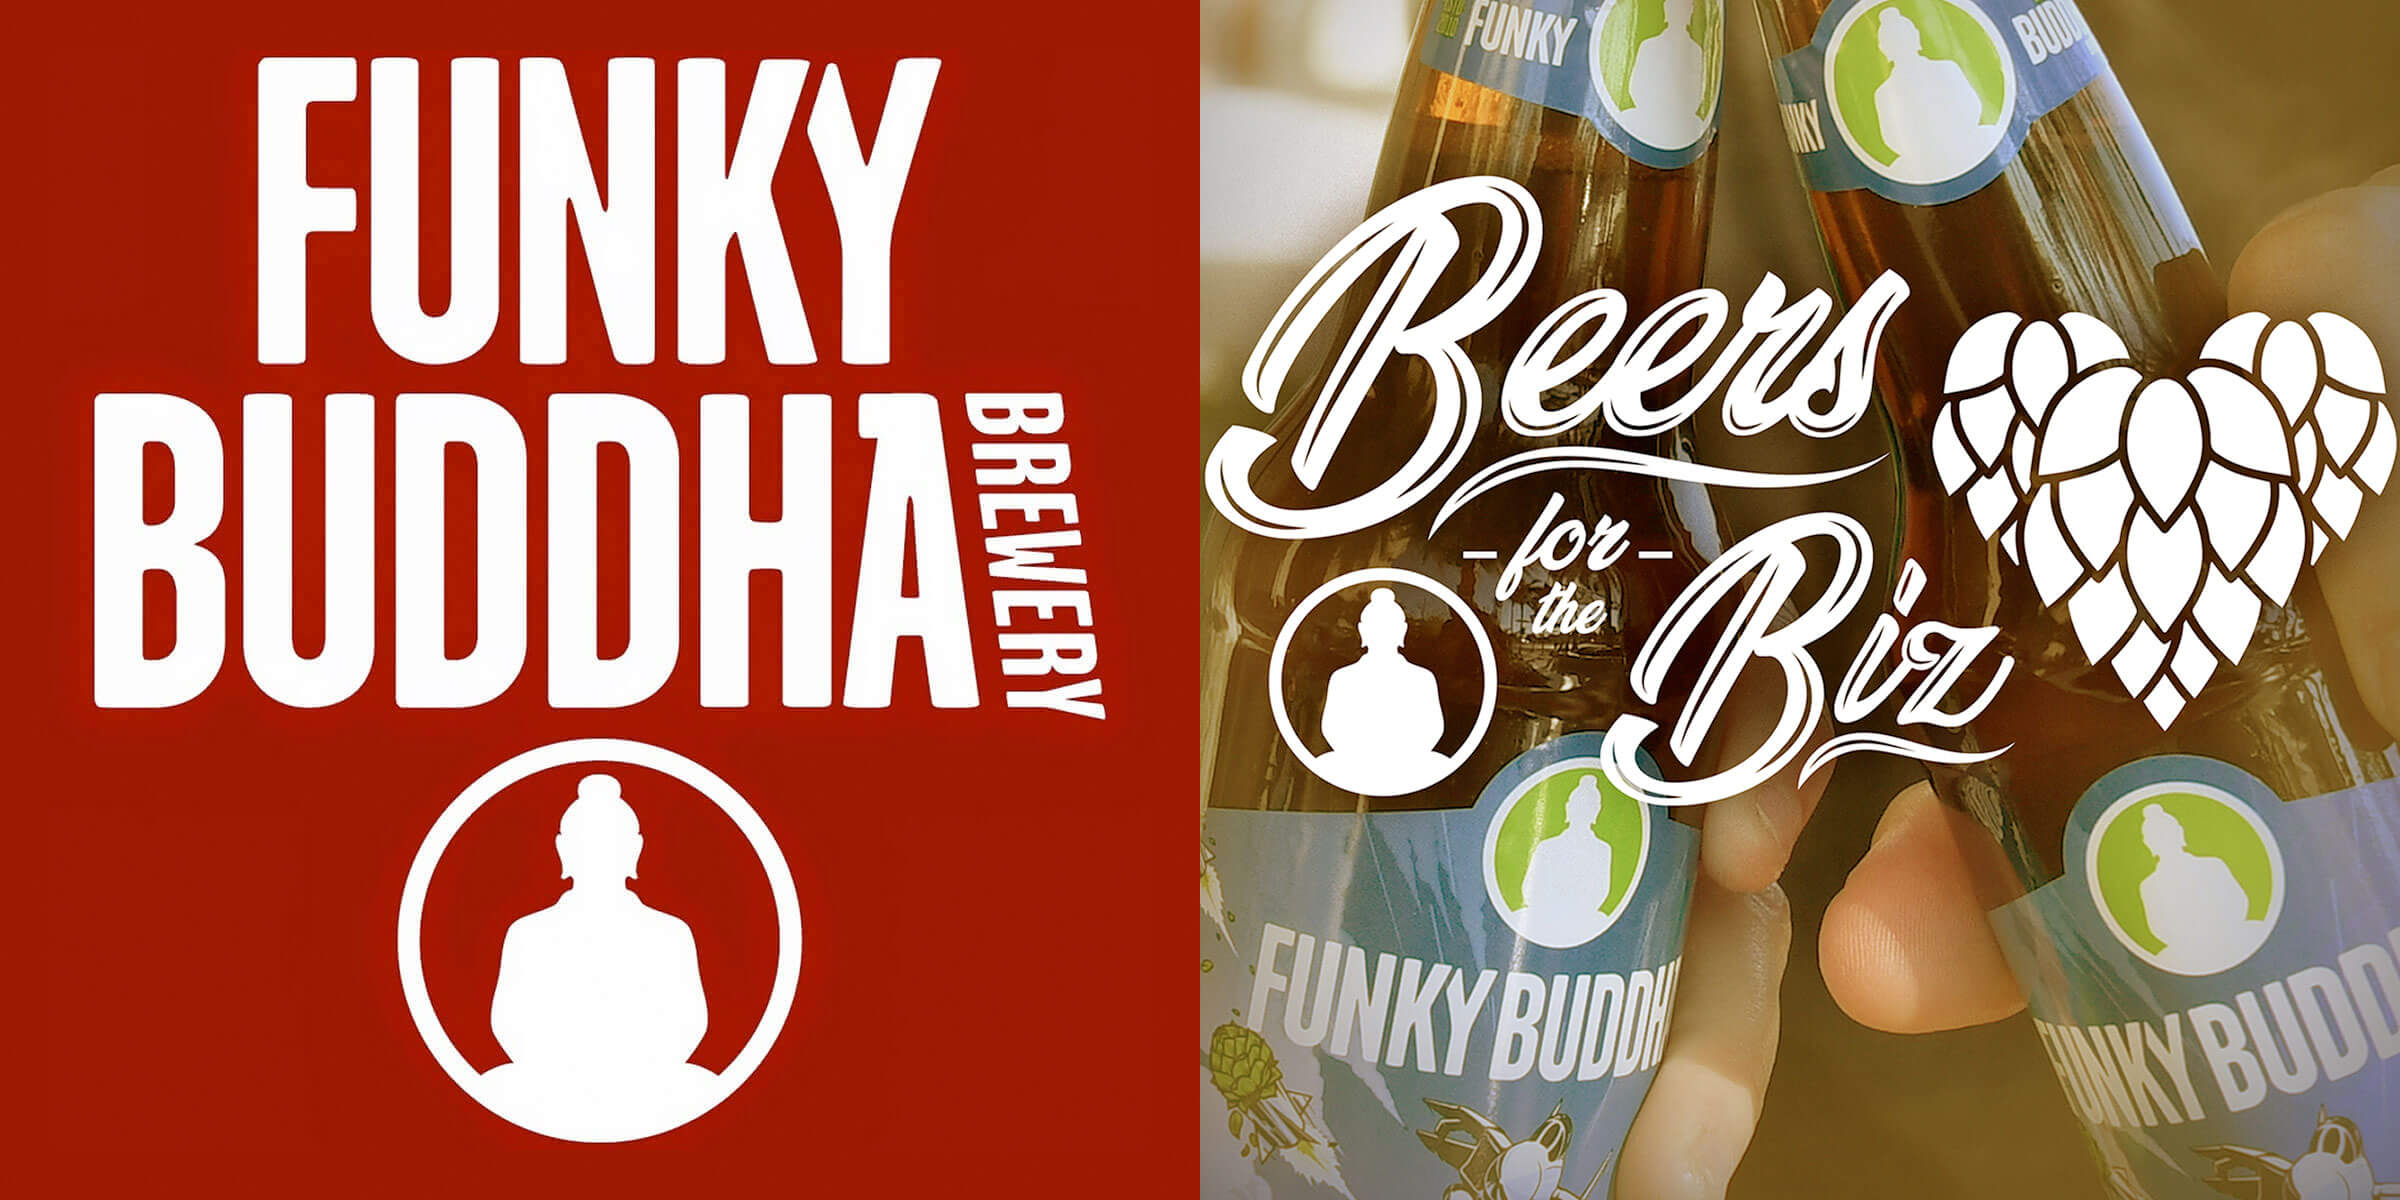 Funky Buddha Brewery announced Beers for the Biz, a program to bring aid and awareness to families in the food and beverage industry affected by COVID-19.